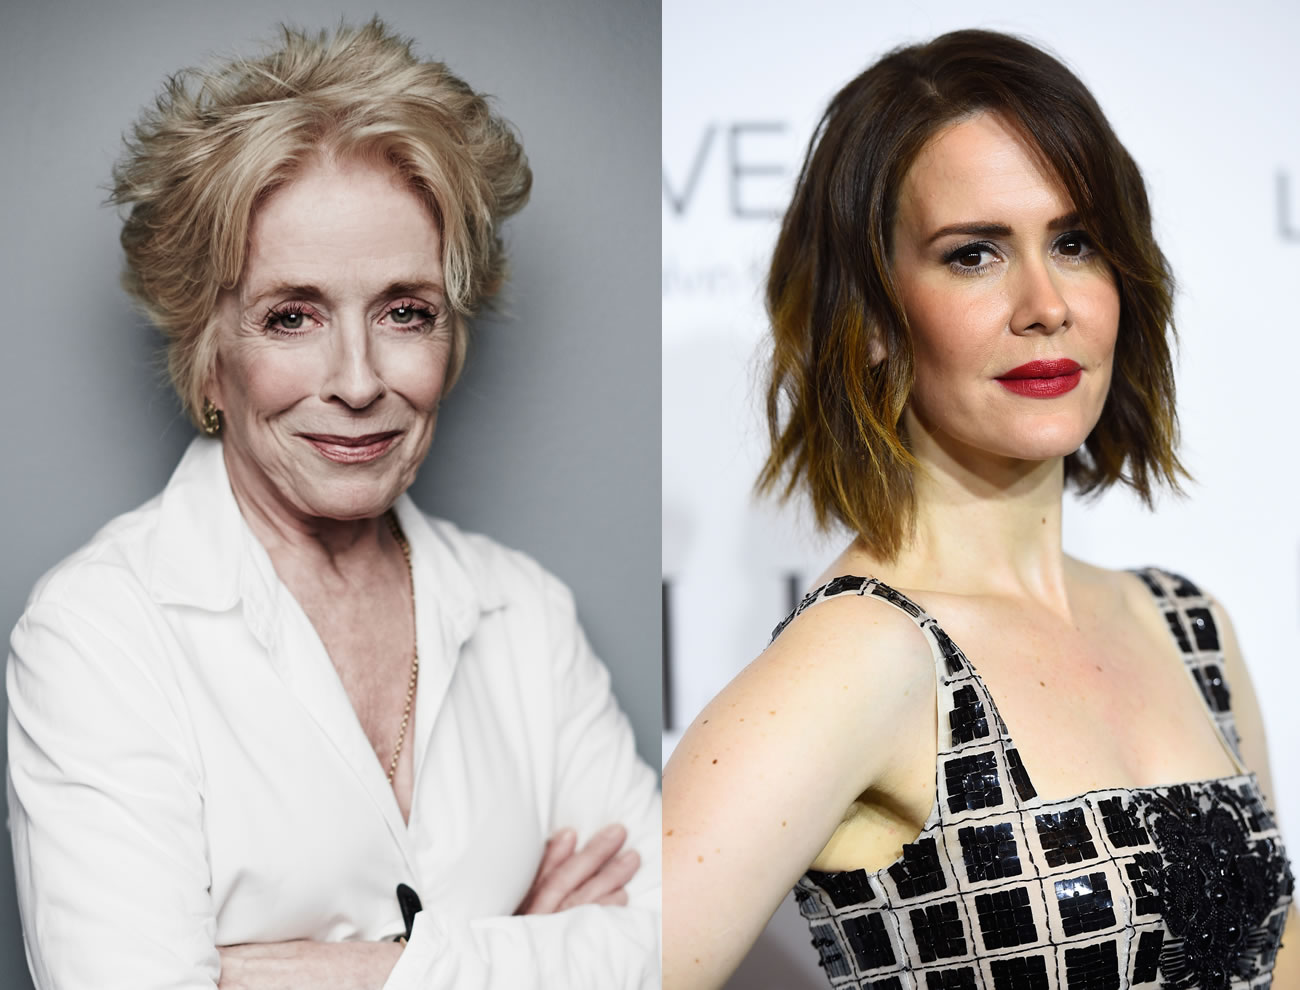 Holland Taylor, de Two And a Half Men, pode estar namorando a atriz Sarah Paulson